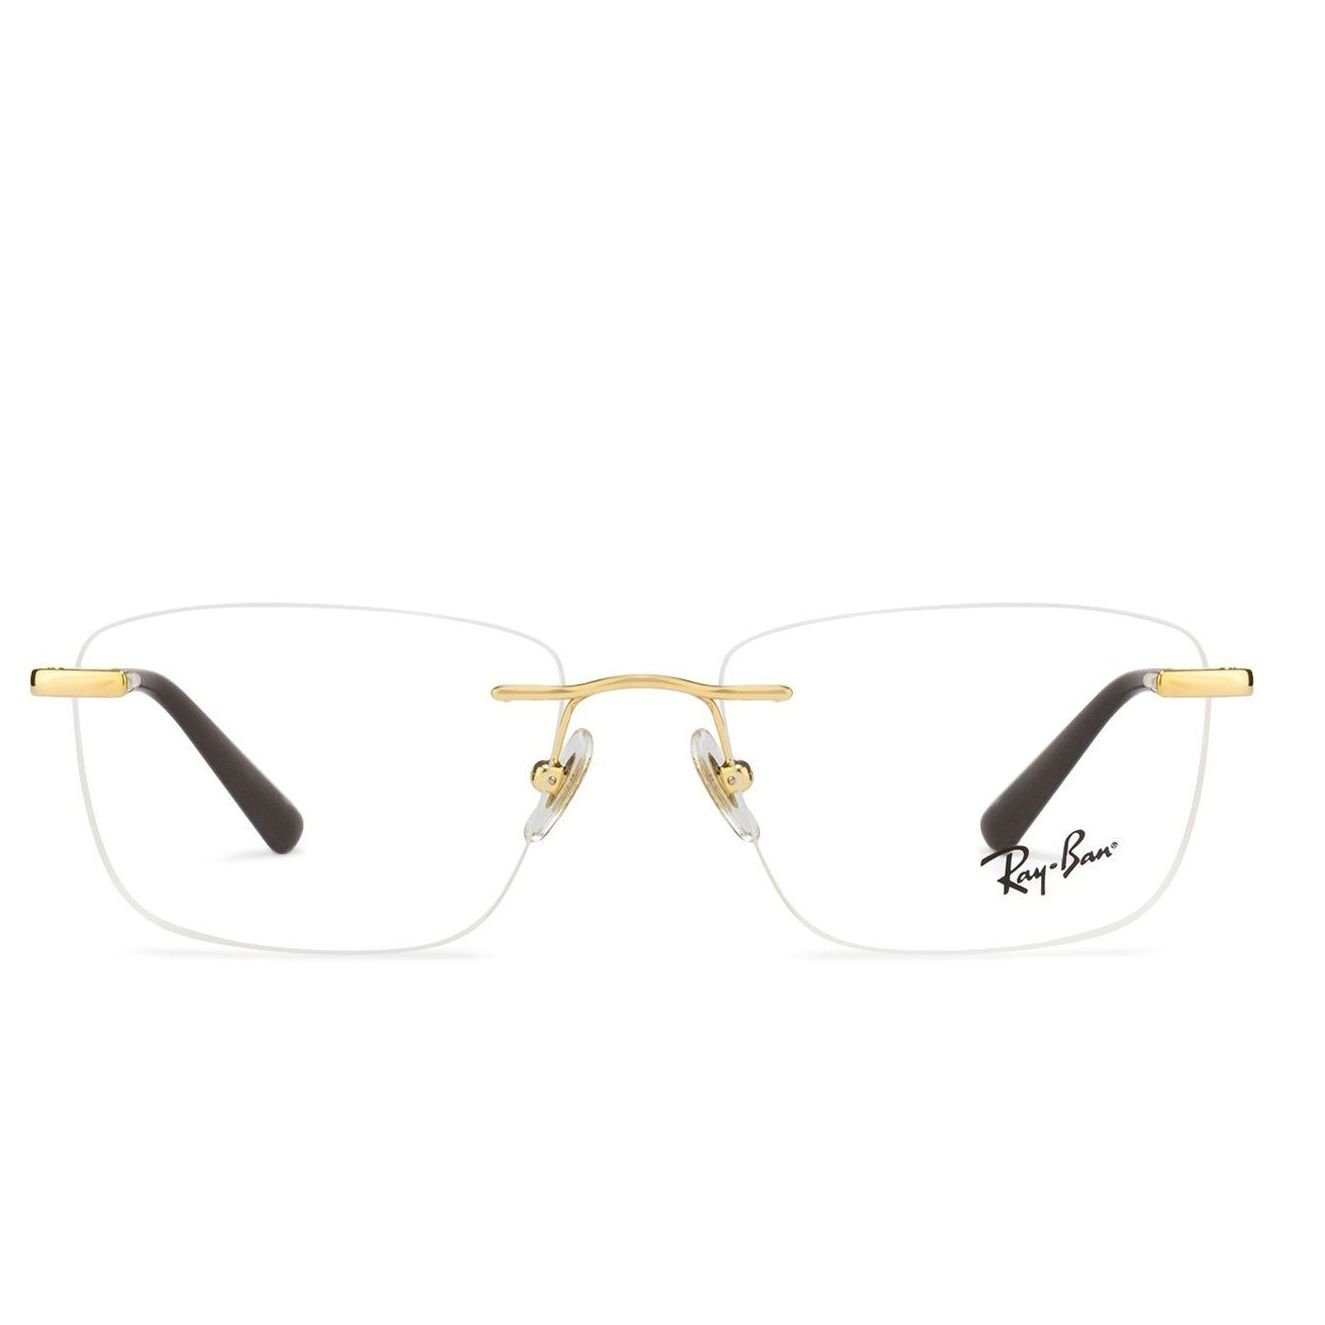 4264b8ce77a Ray-Ban RX6390-02500 Golden Frame With Golden Brown Temple Unisex Square  Rimless Eyeglasses  RayBan  Eyeglasses  LatestEyeglasses  BestPrice   Onlineshopping ...